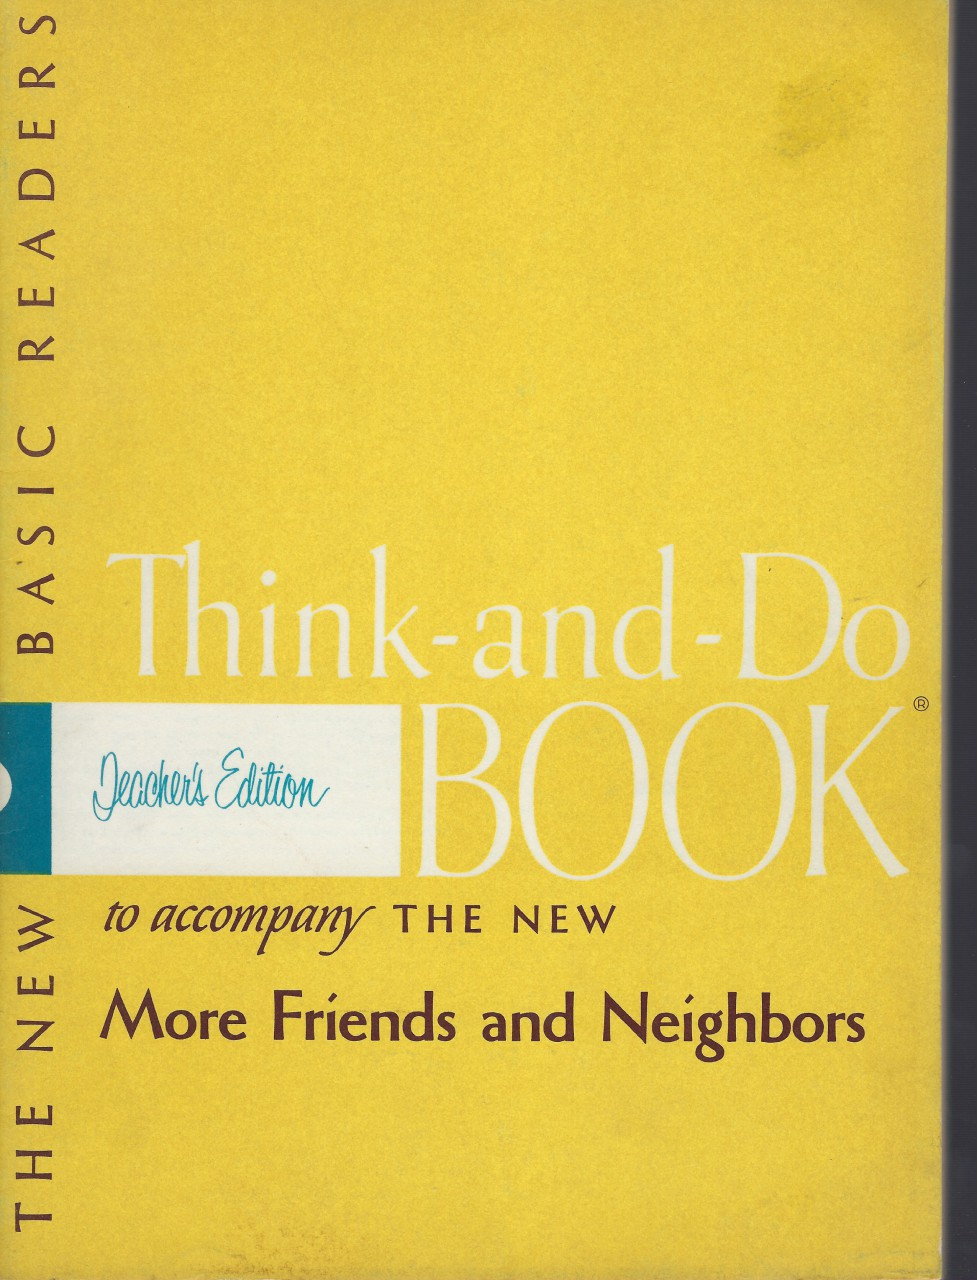 Think and Do Book Teacher's Edition The New More Friends and Neighbors 1956 Dick & Jane, Gray, William S. & Monroe, Marion